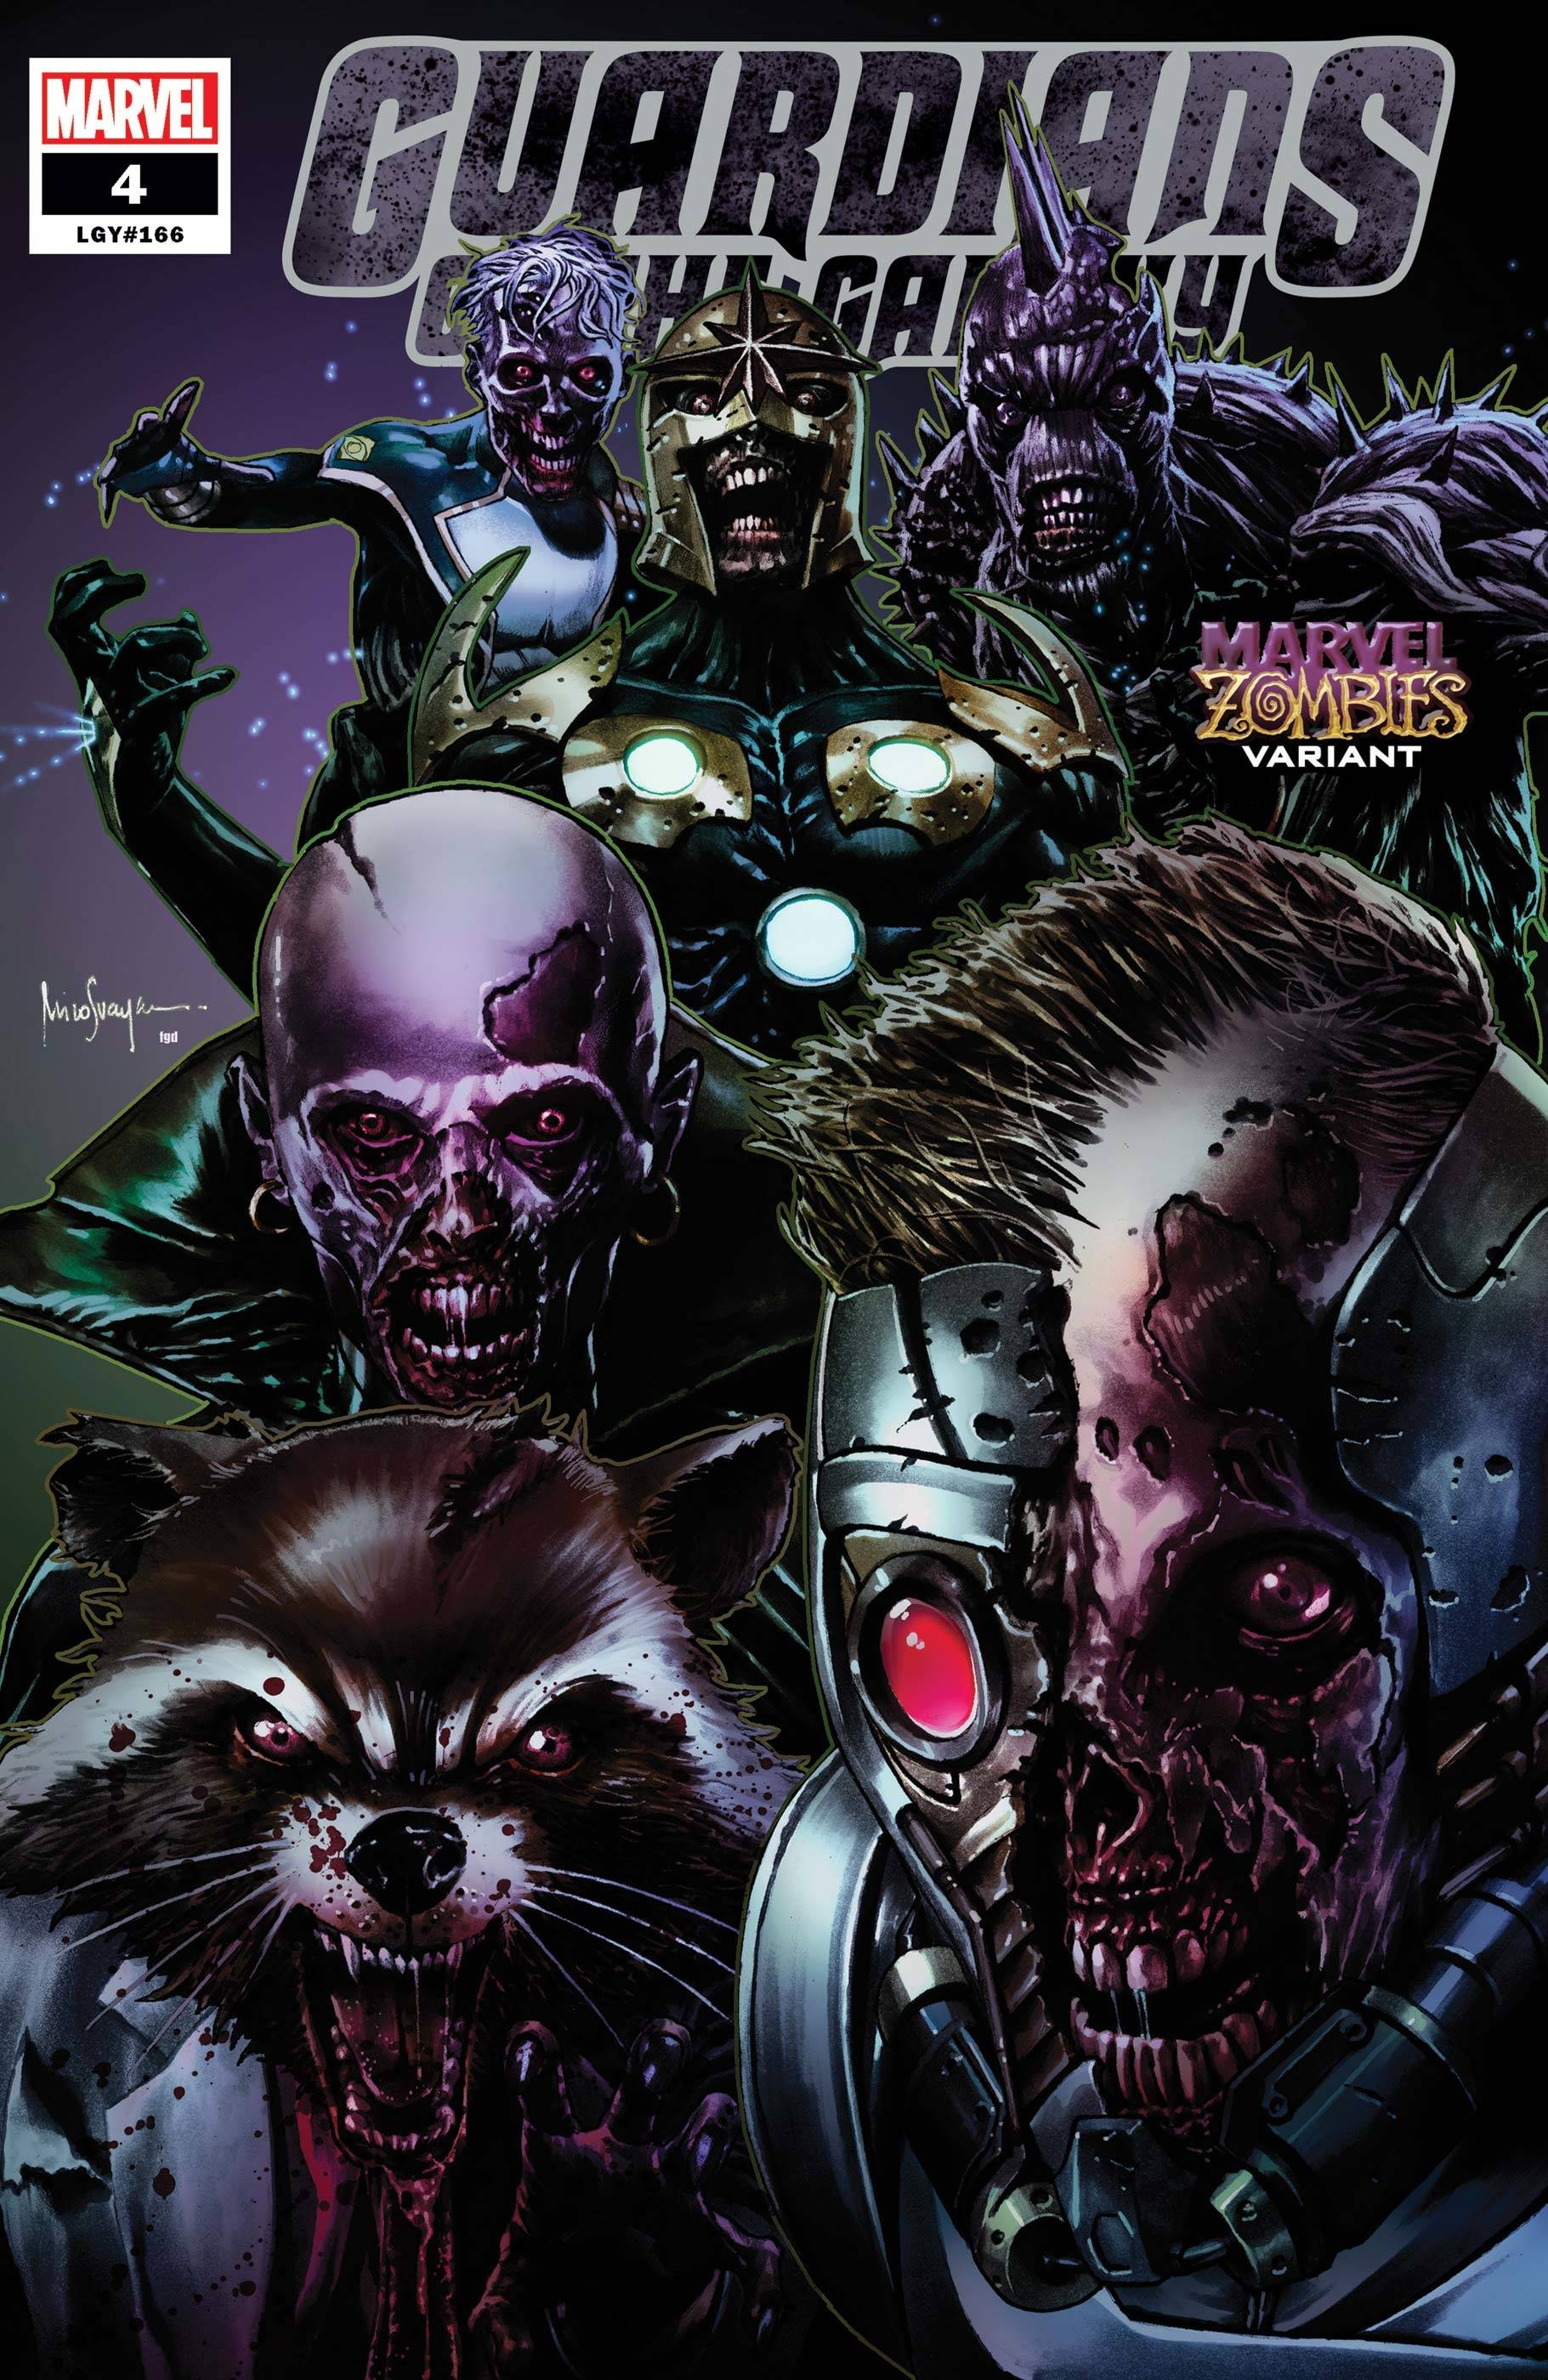 GUARDIANS OF THE GALAXY #4 SUAYAN MARVEL ZOMBIES VAR